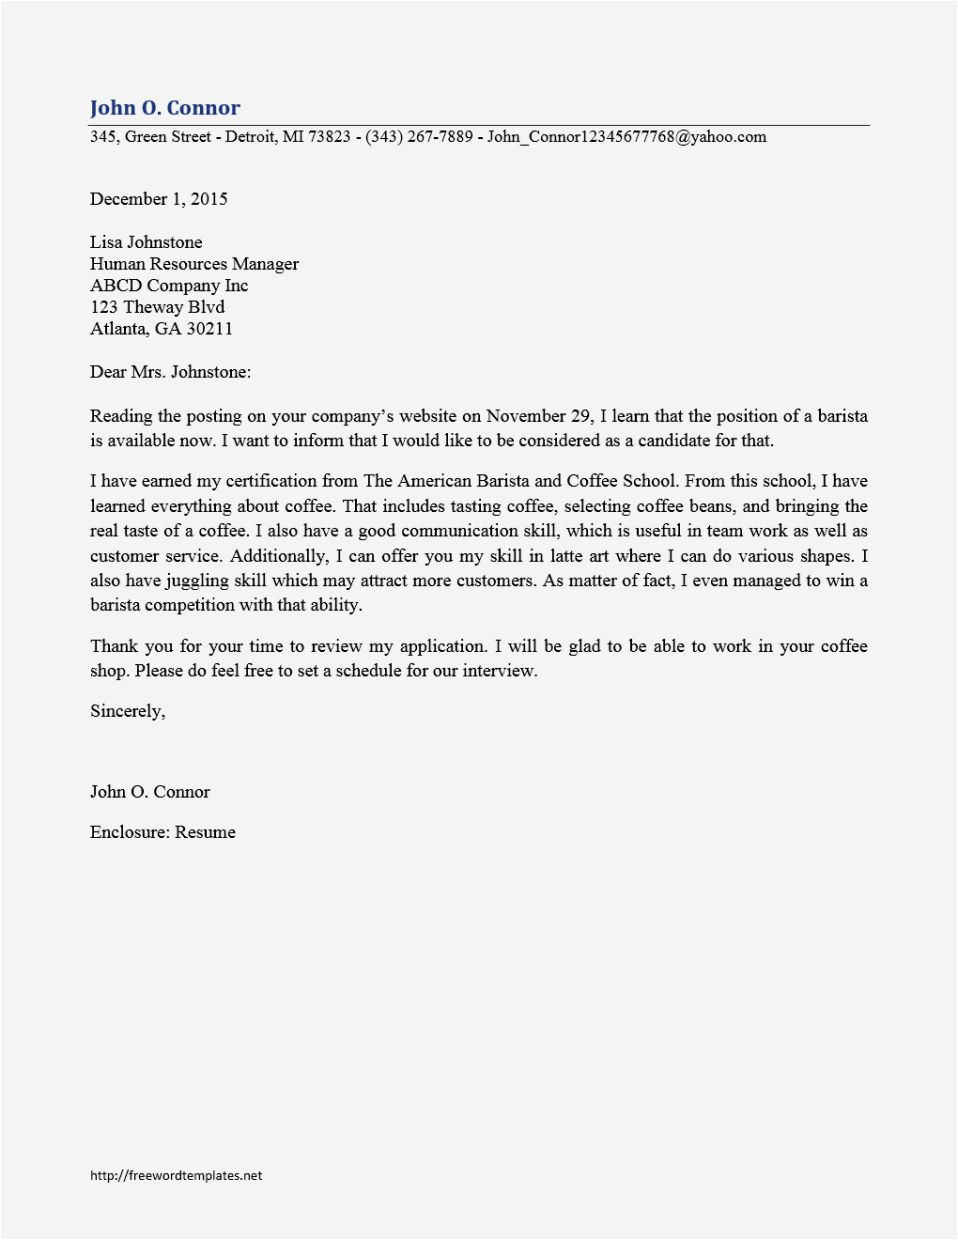 Cover Letter with No Name Of Recipient Cover Letter No Template Resume Template Cover Letter